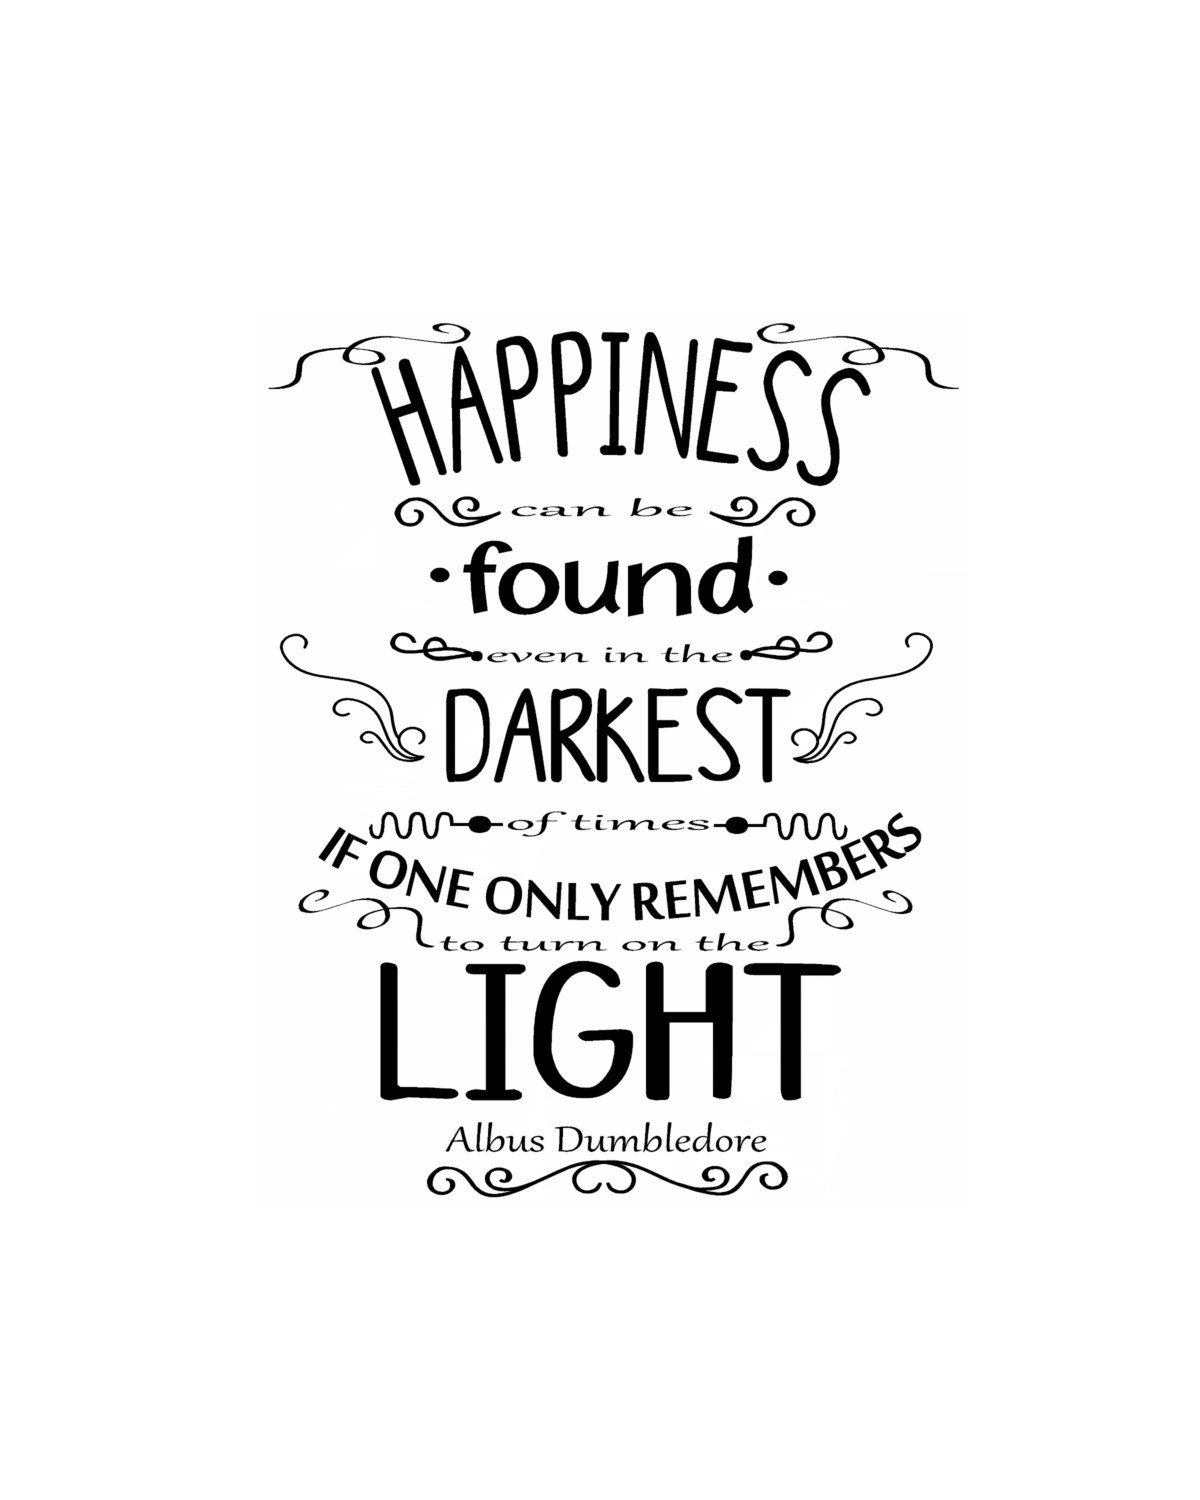 Happiness Poster reproduction. Albus Dumbledore quote from Harry Potter